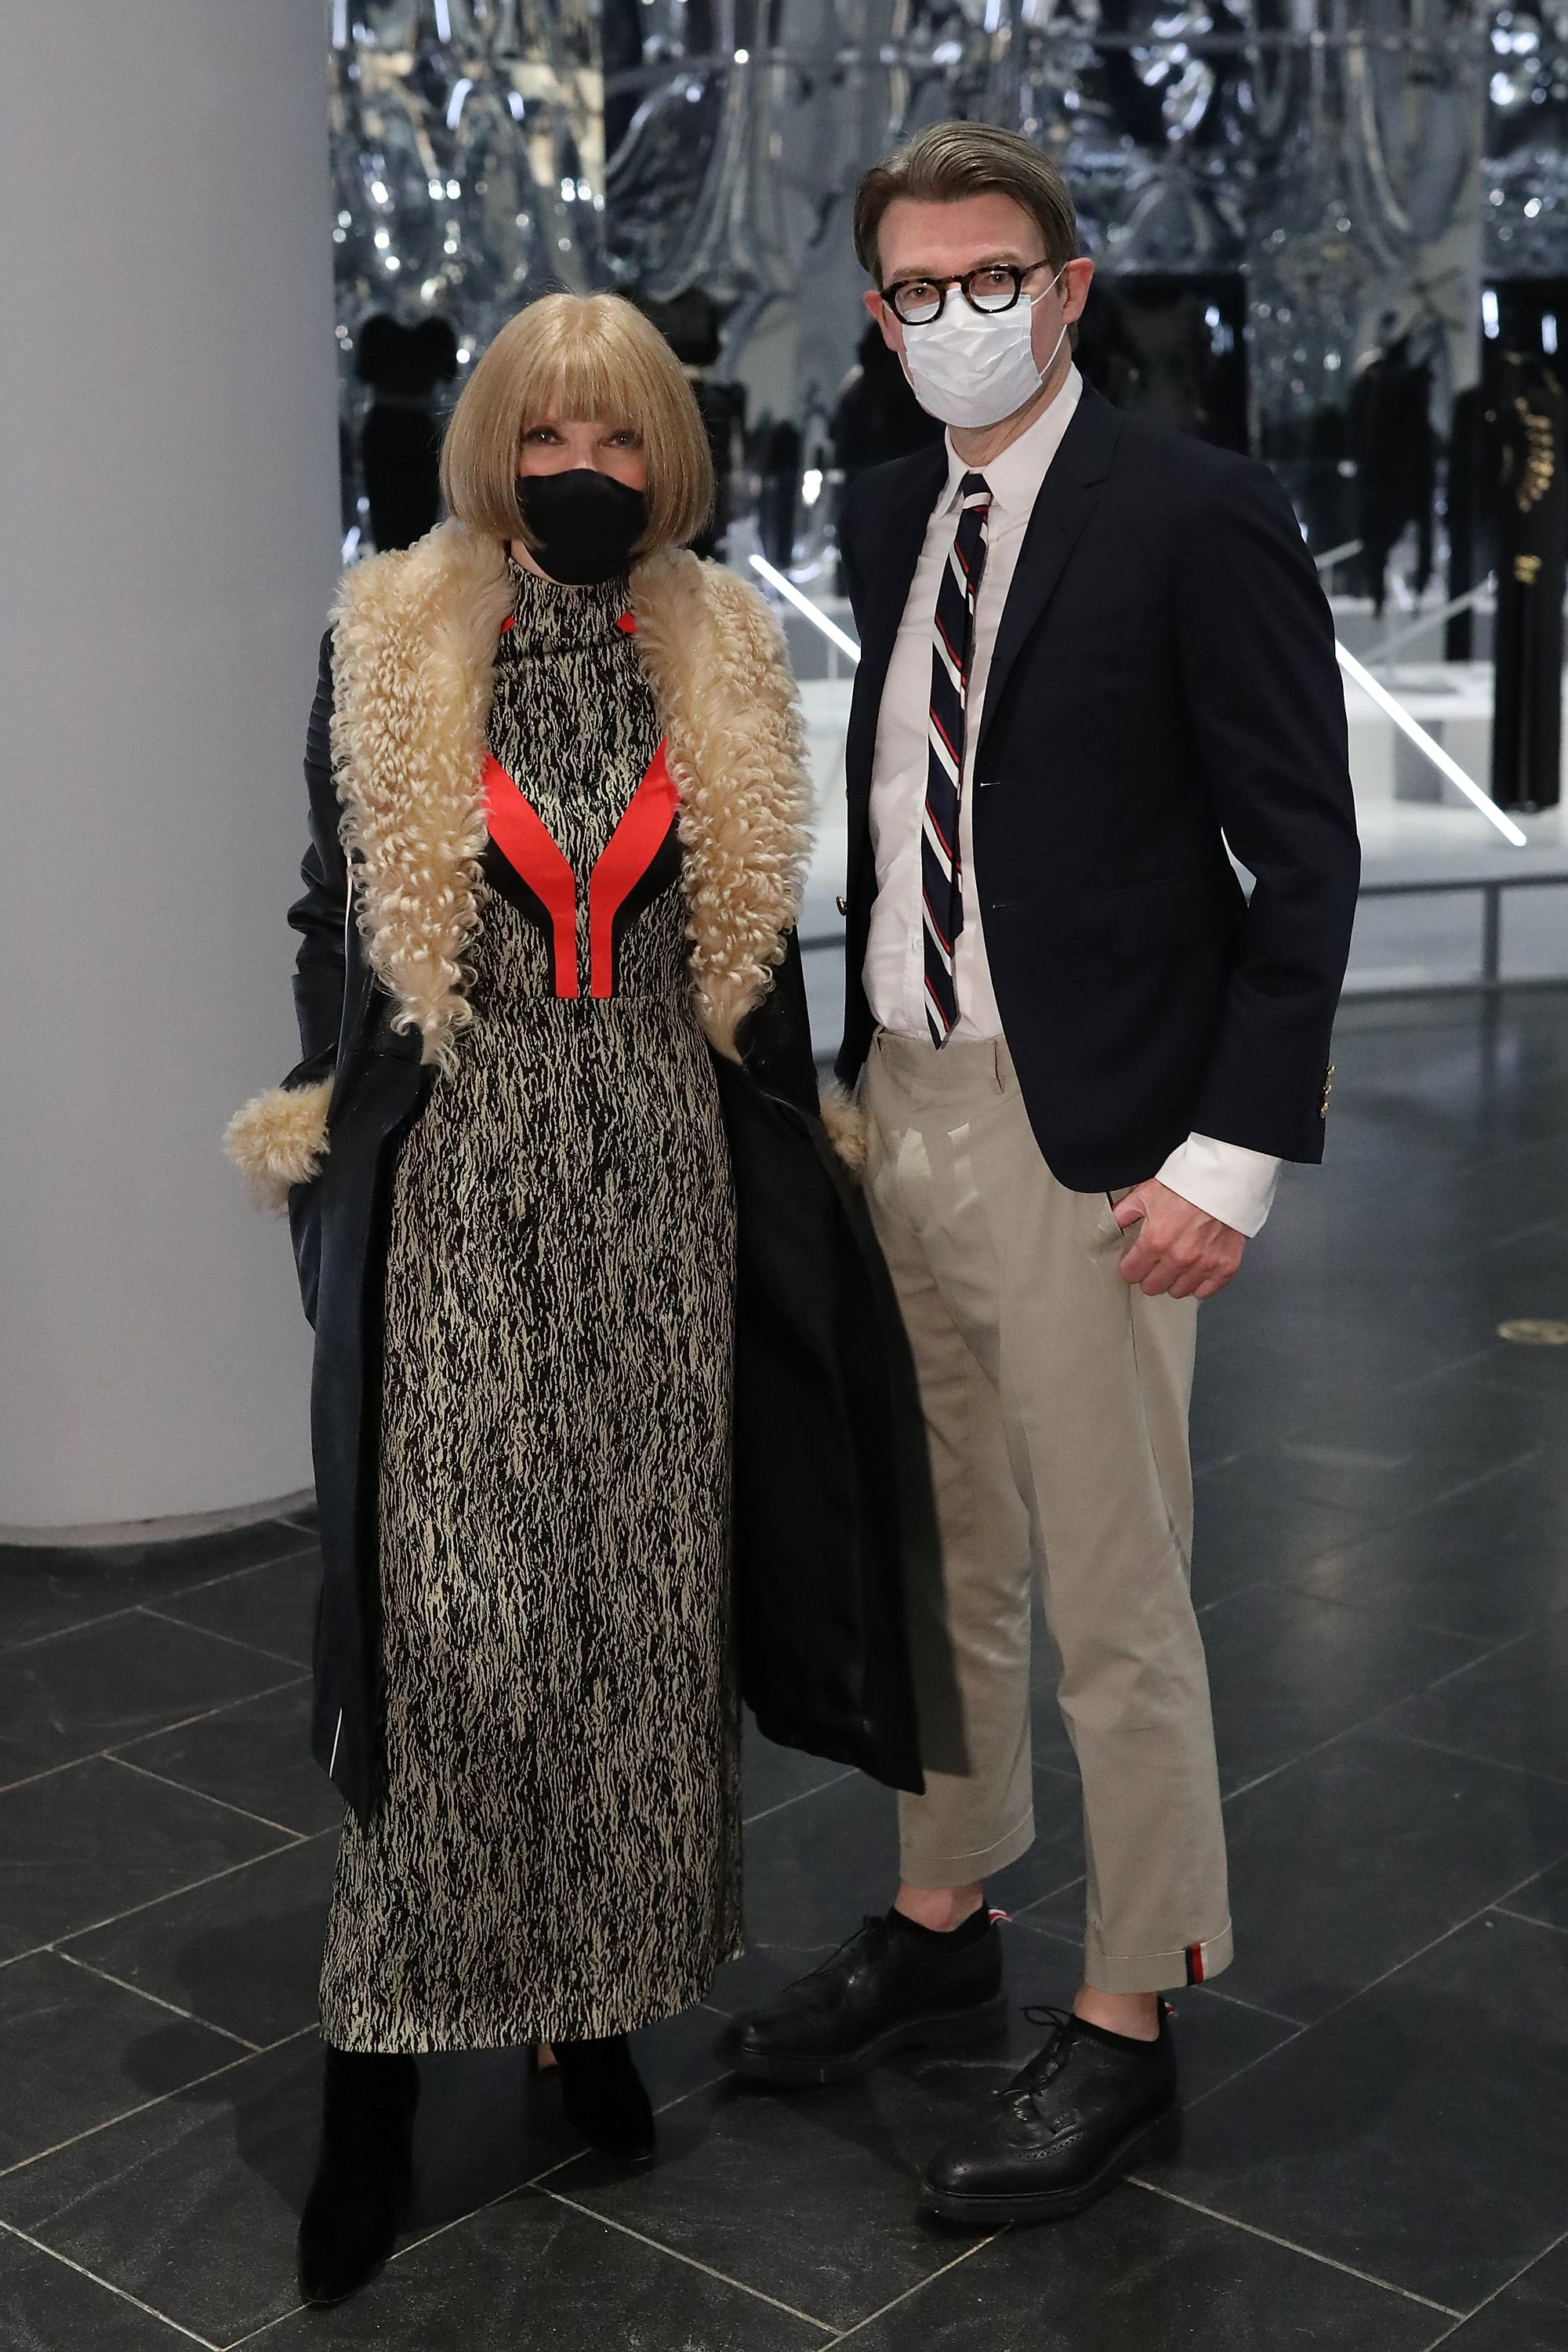 NEW YORK, NEW YORK - OCTOBER 26: Anna Wintour and Andrew Bolton attend the press preview for the Costume Institute's annual exhibition